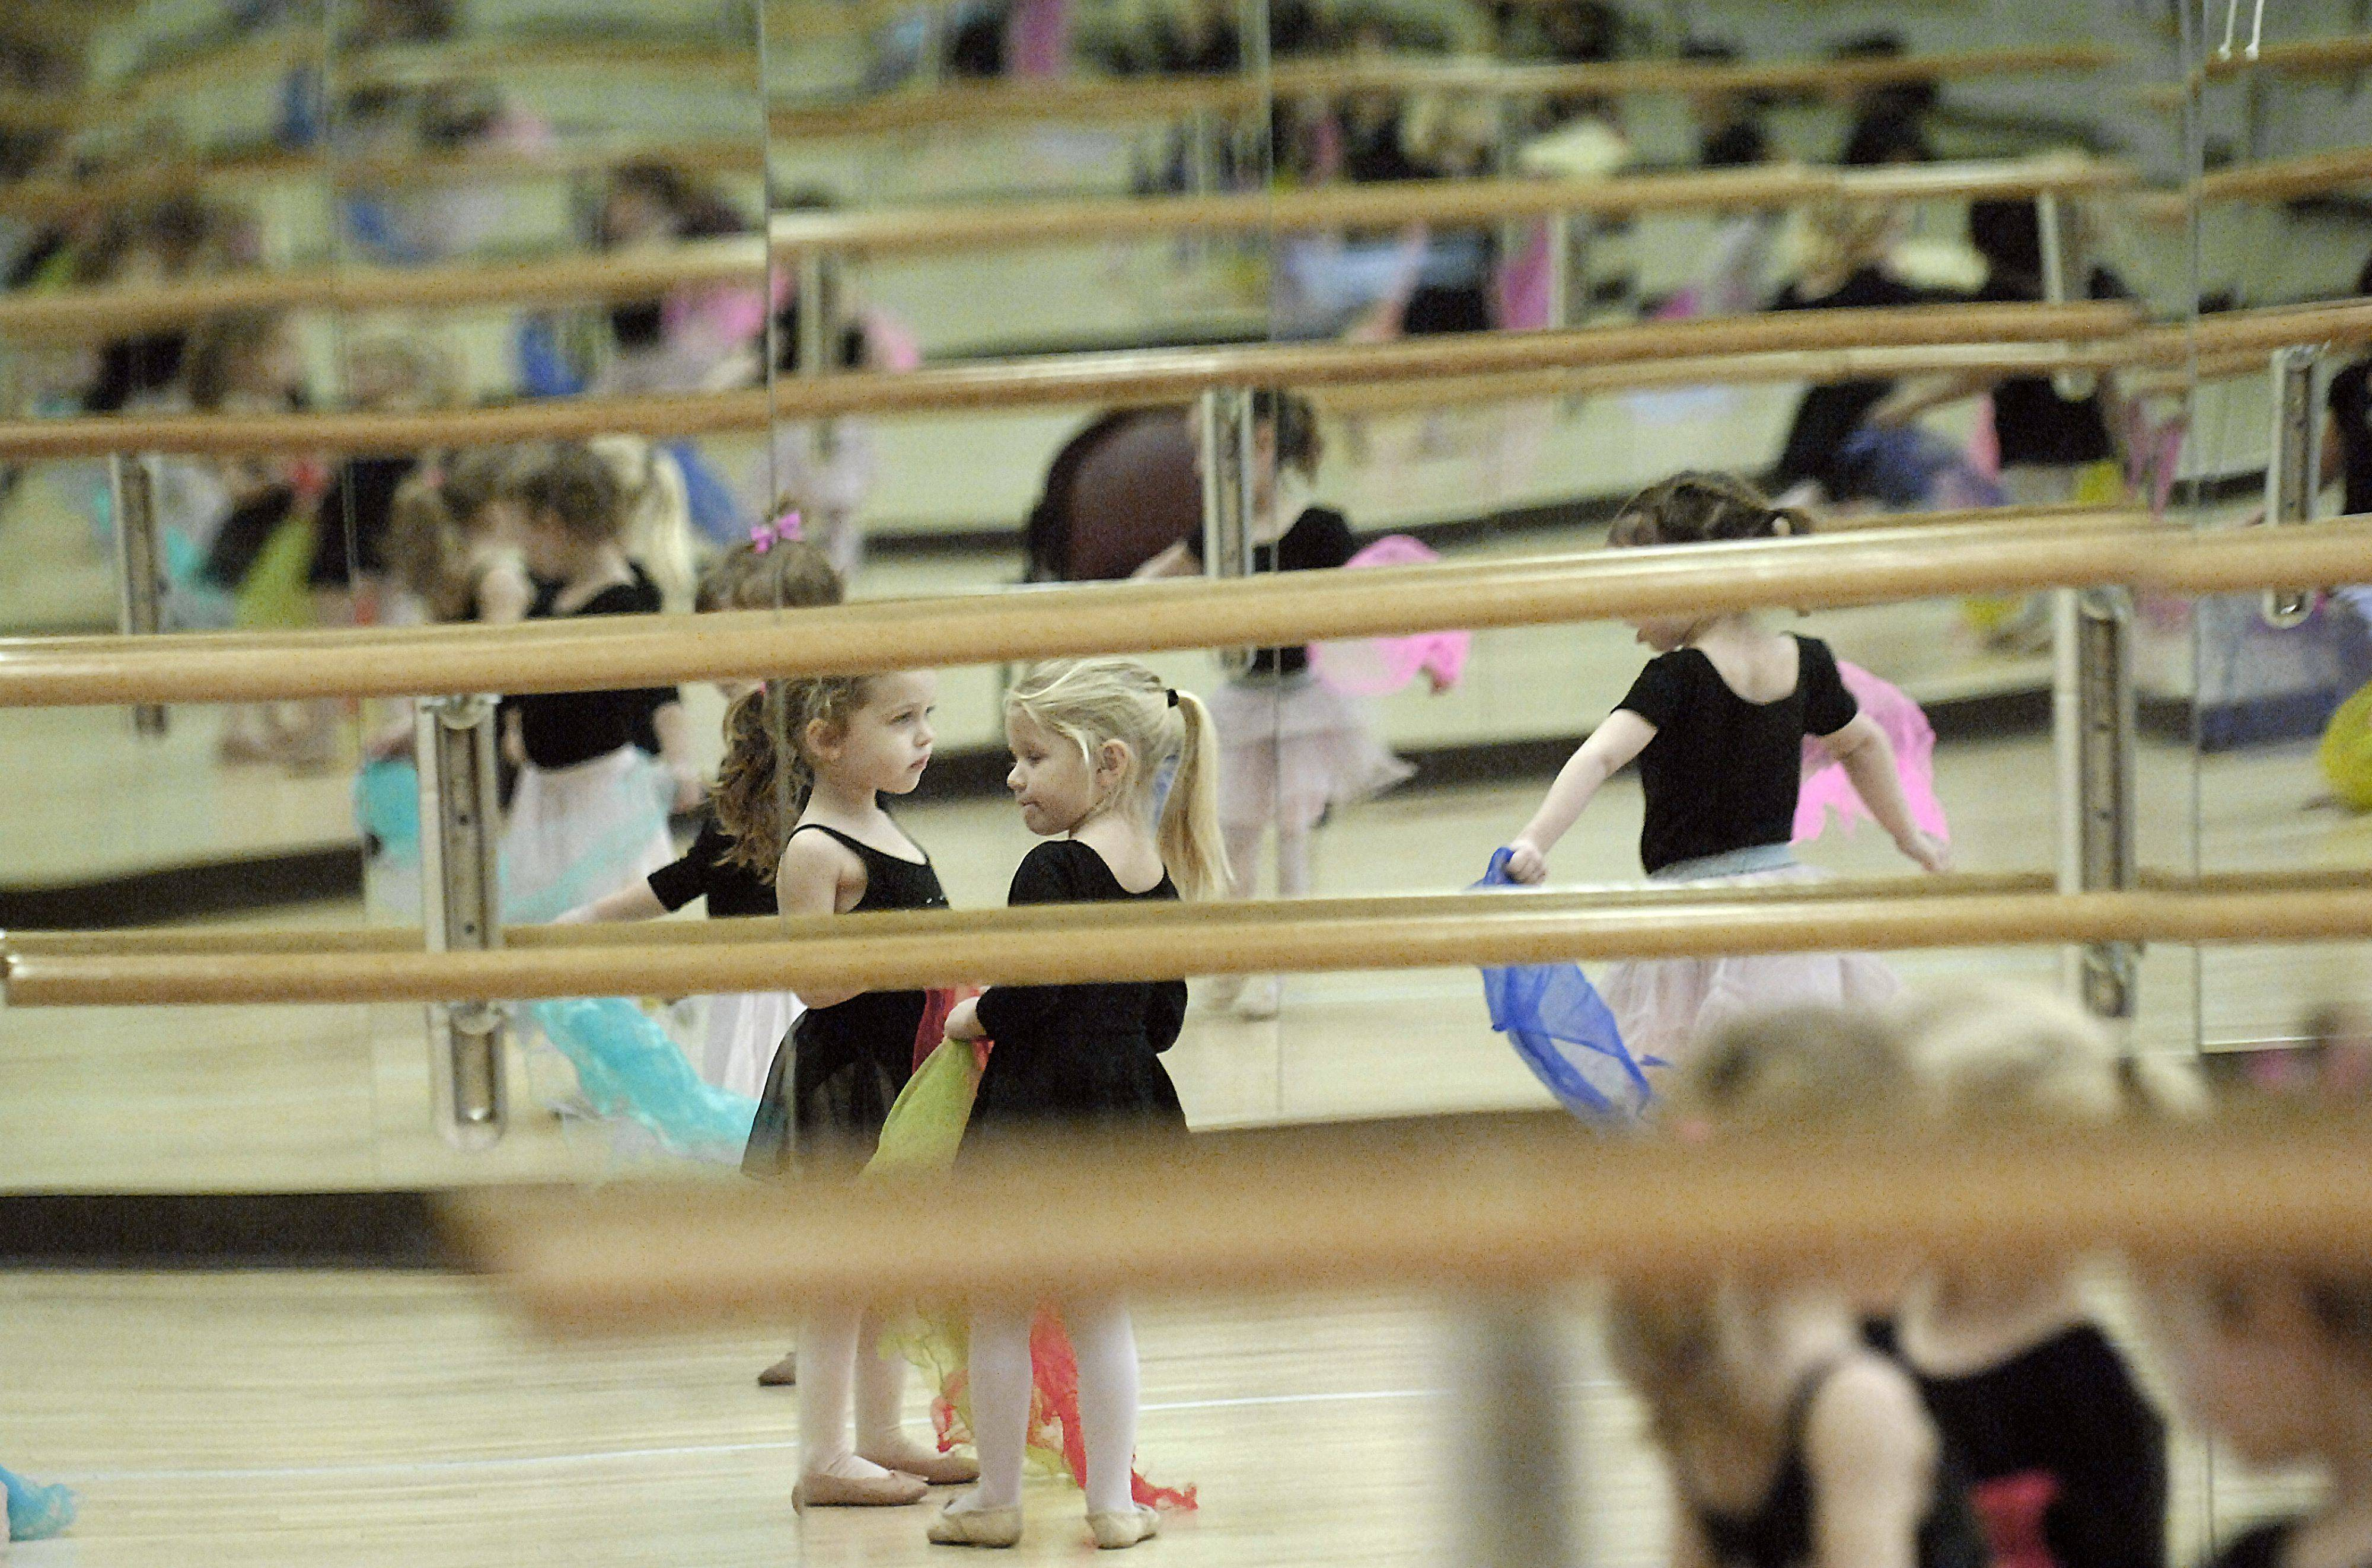 Tori Kallenbach, 4, of South Elgin, left, and Megan Liska, 3, of St. Charles wait to dance with brightly colored scarves in their Babes in Ballet class taught by Debbie Studdard at the St. Charles Park District's Pottawatomie Community Center on Thursday, January 13. This is Tori's second ballet class and Megan's first. Babes in Ballet is offered to age groups starting at age three up and up to six, and several classes are offered during the week.